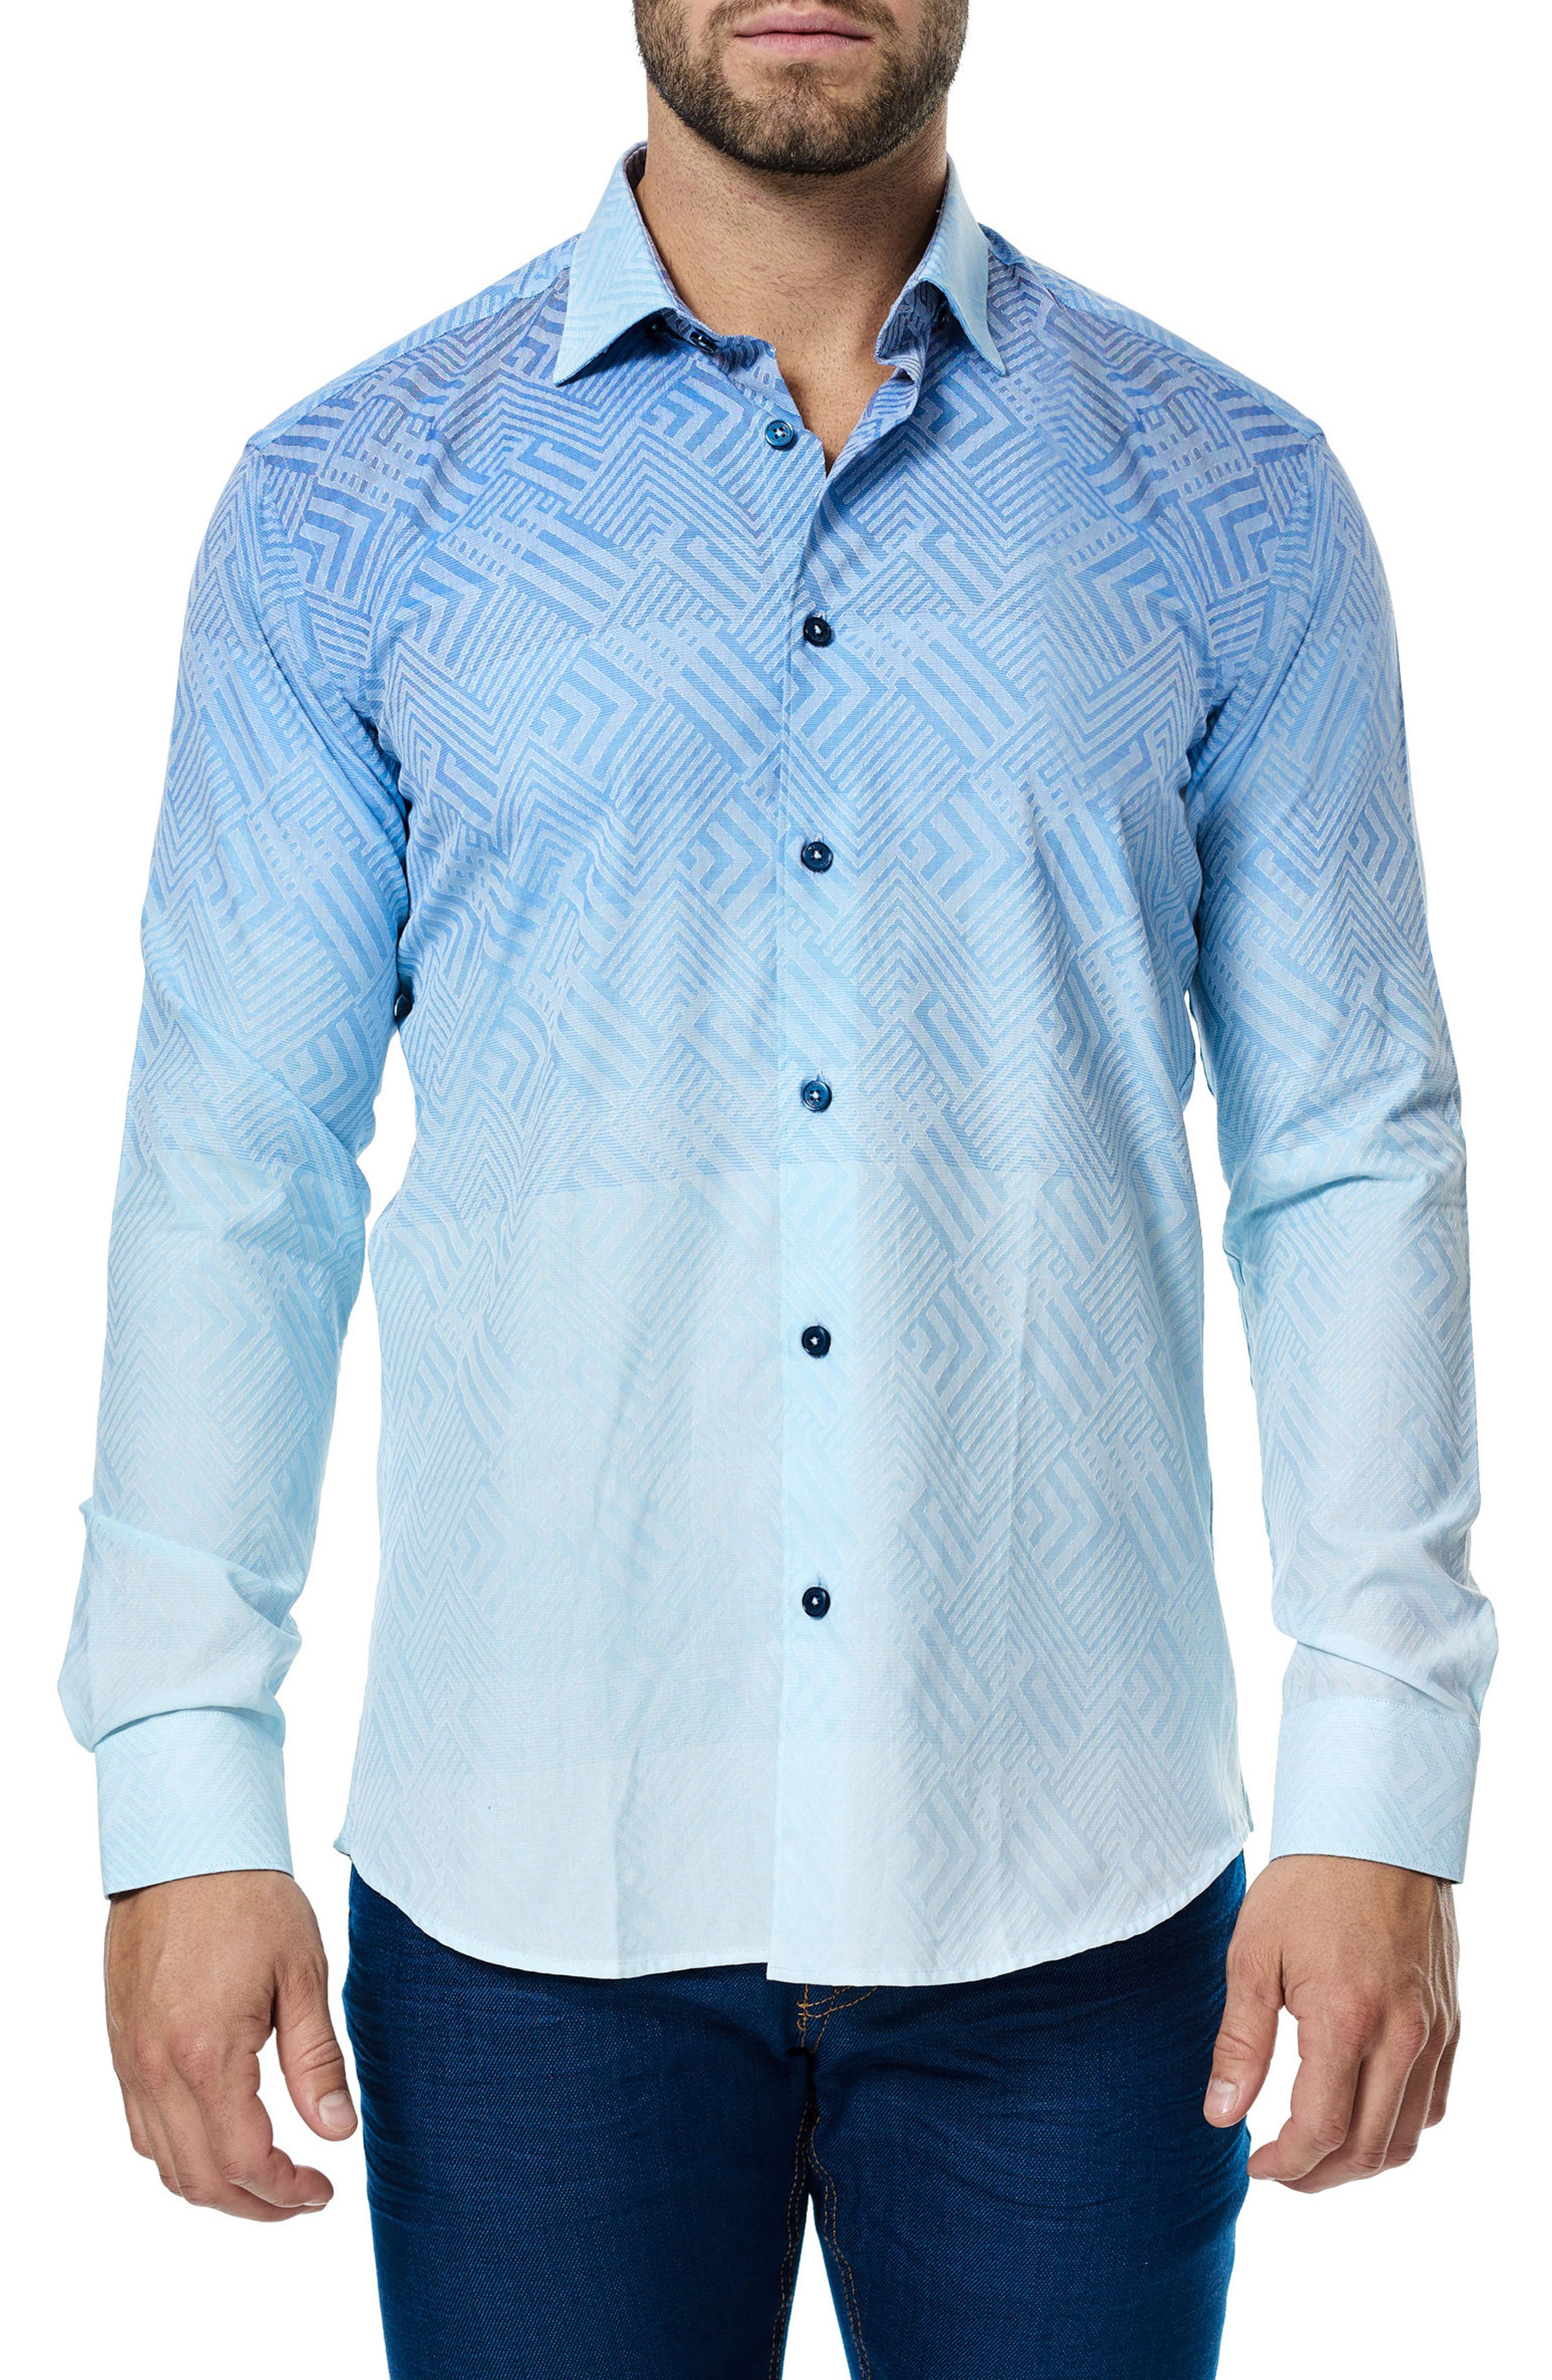 Luxor Ombré Geo Sport Shirt,                             Main thumbnail 1, color,                             422